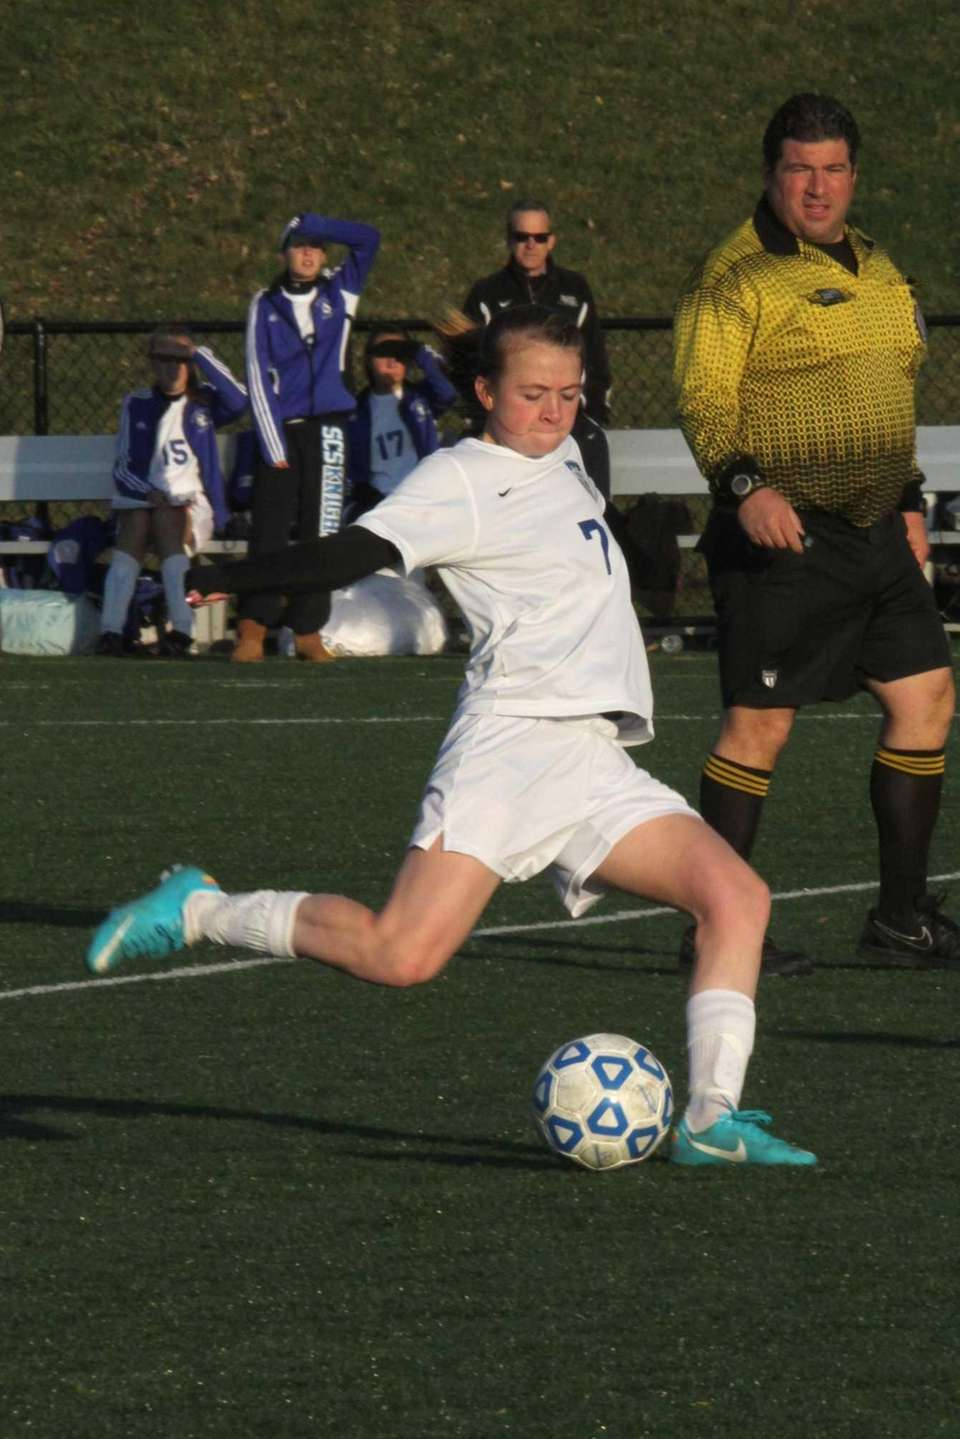 Gennifer Vandeventer of Smithtown Christian kicks the ball